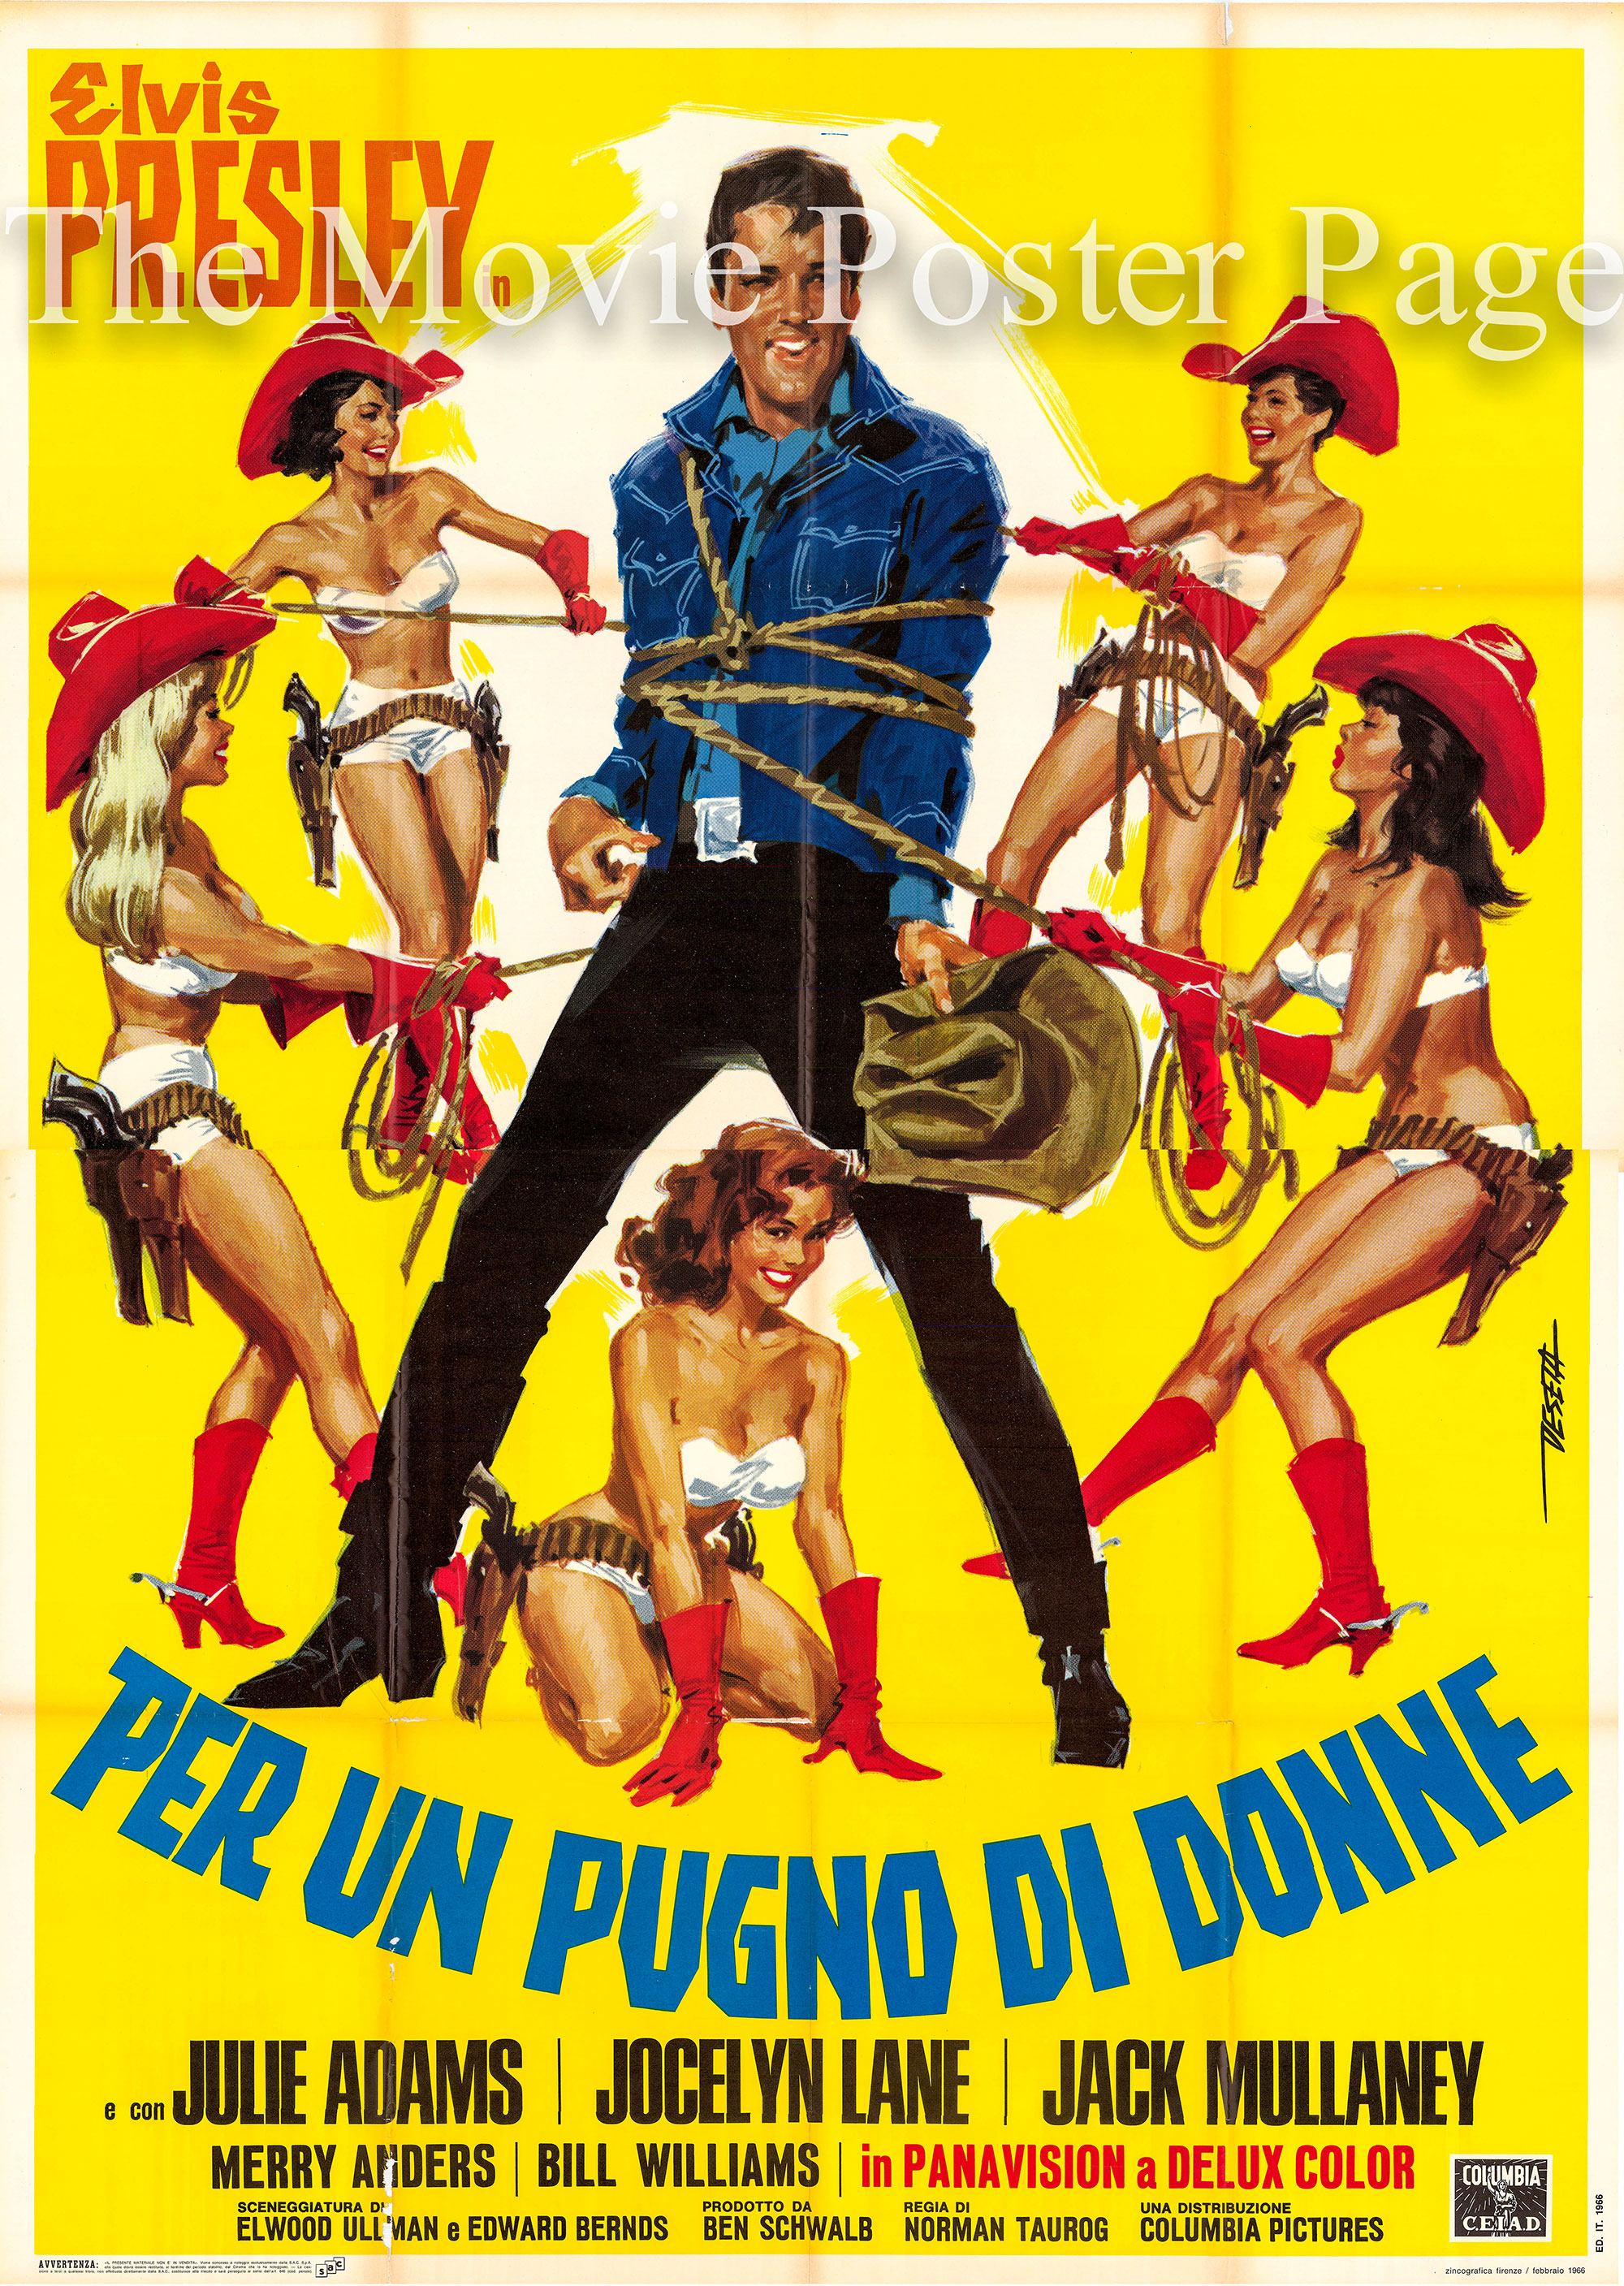 Pictured is an Italian four-sheet promotional poster for the 1965 Norman Taurog film <i>Tickle Me</i> starring Elvis Presley.